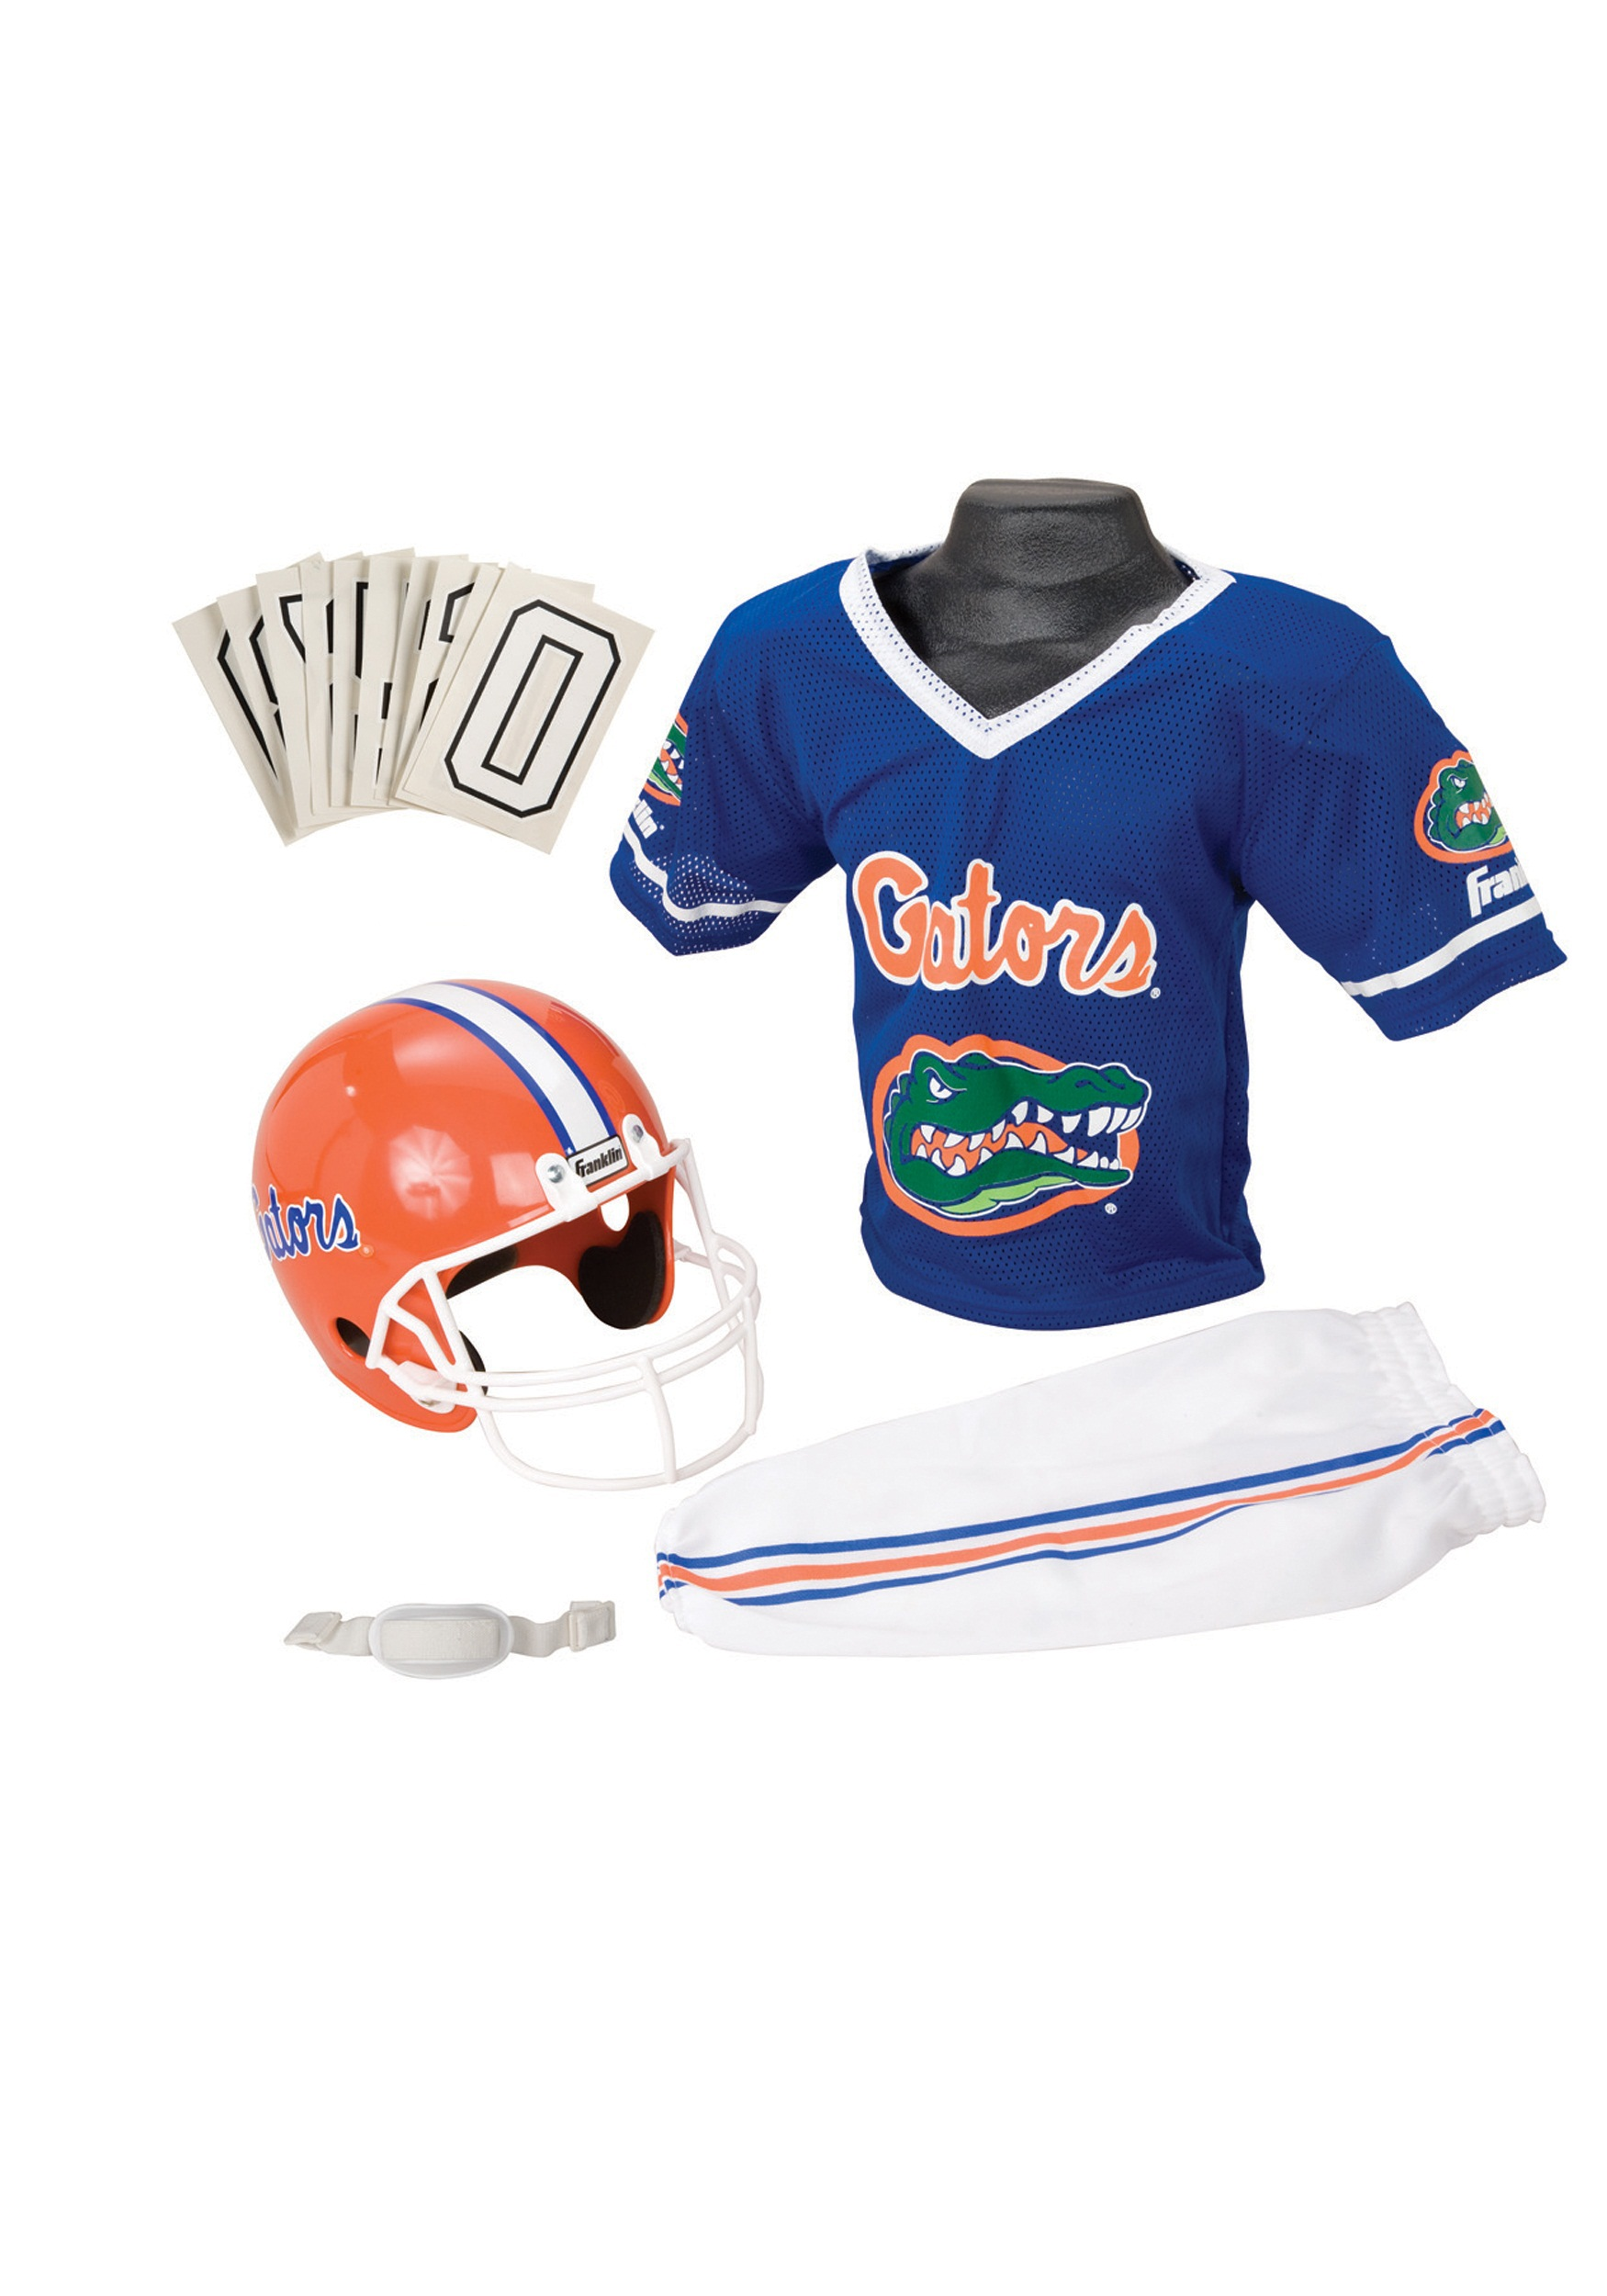 64c3d6b45 University of Florida Gators Child Uniform Costume